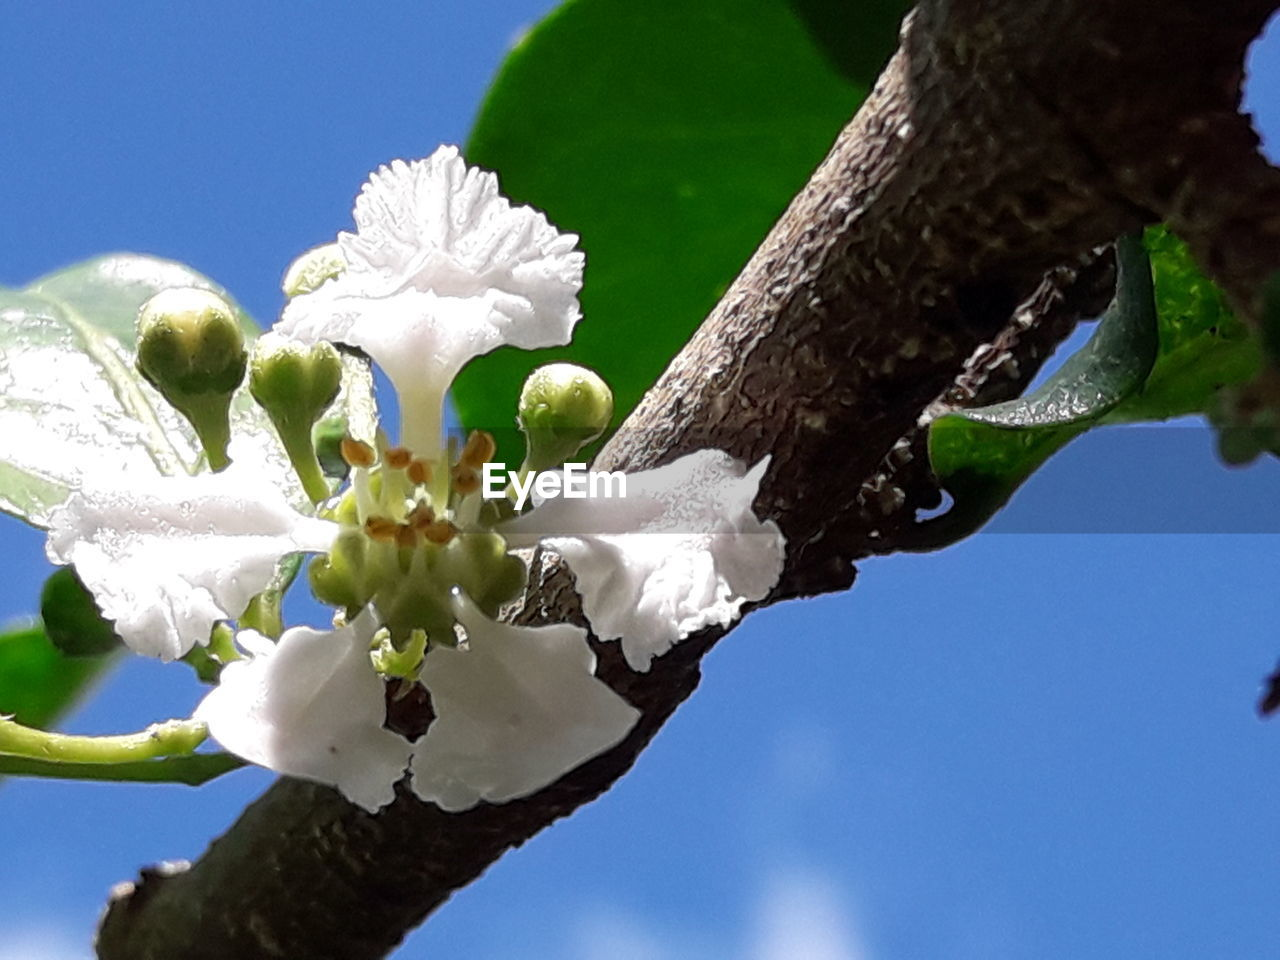 flower, white color, tree, growth, fragility, beauty in nature, petal, nature, freshness, low angle view, branch, flower head, day, no people, outdoors, blossom, blooming, springtime, close-up, sky